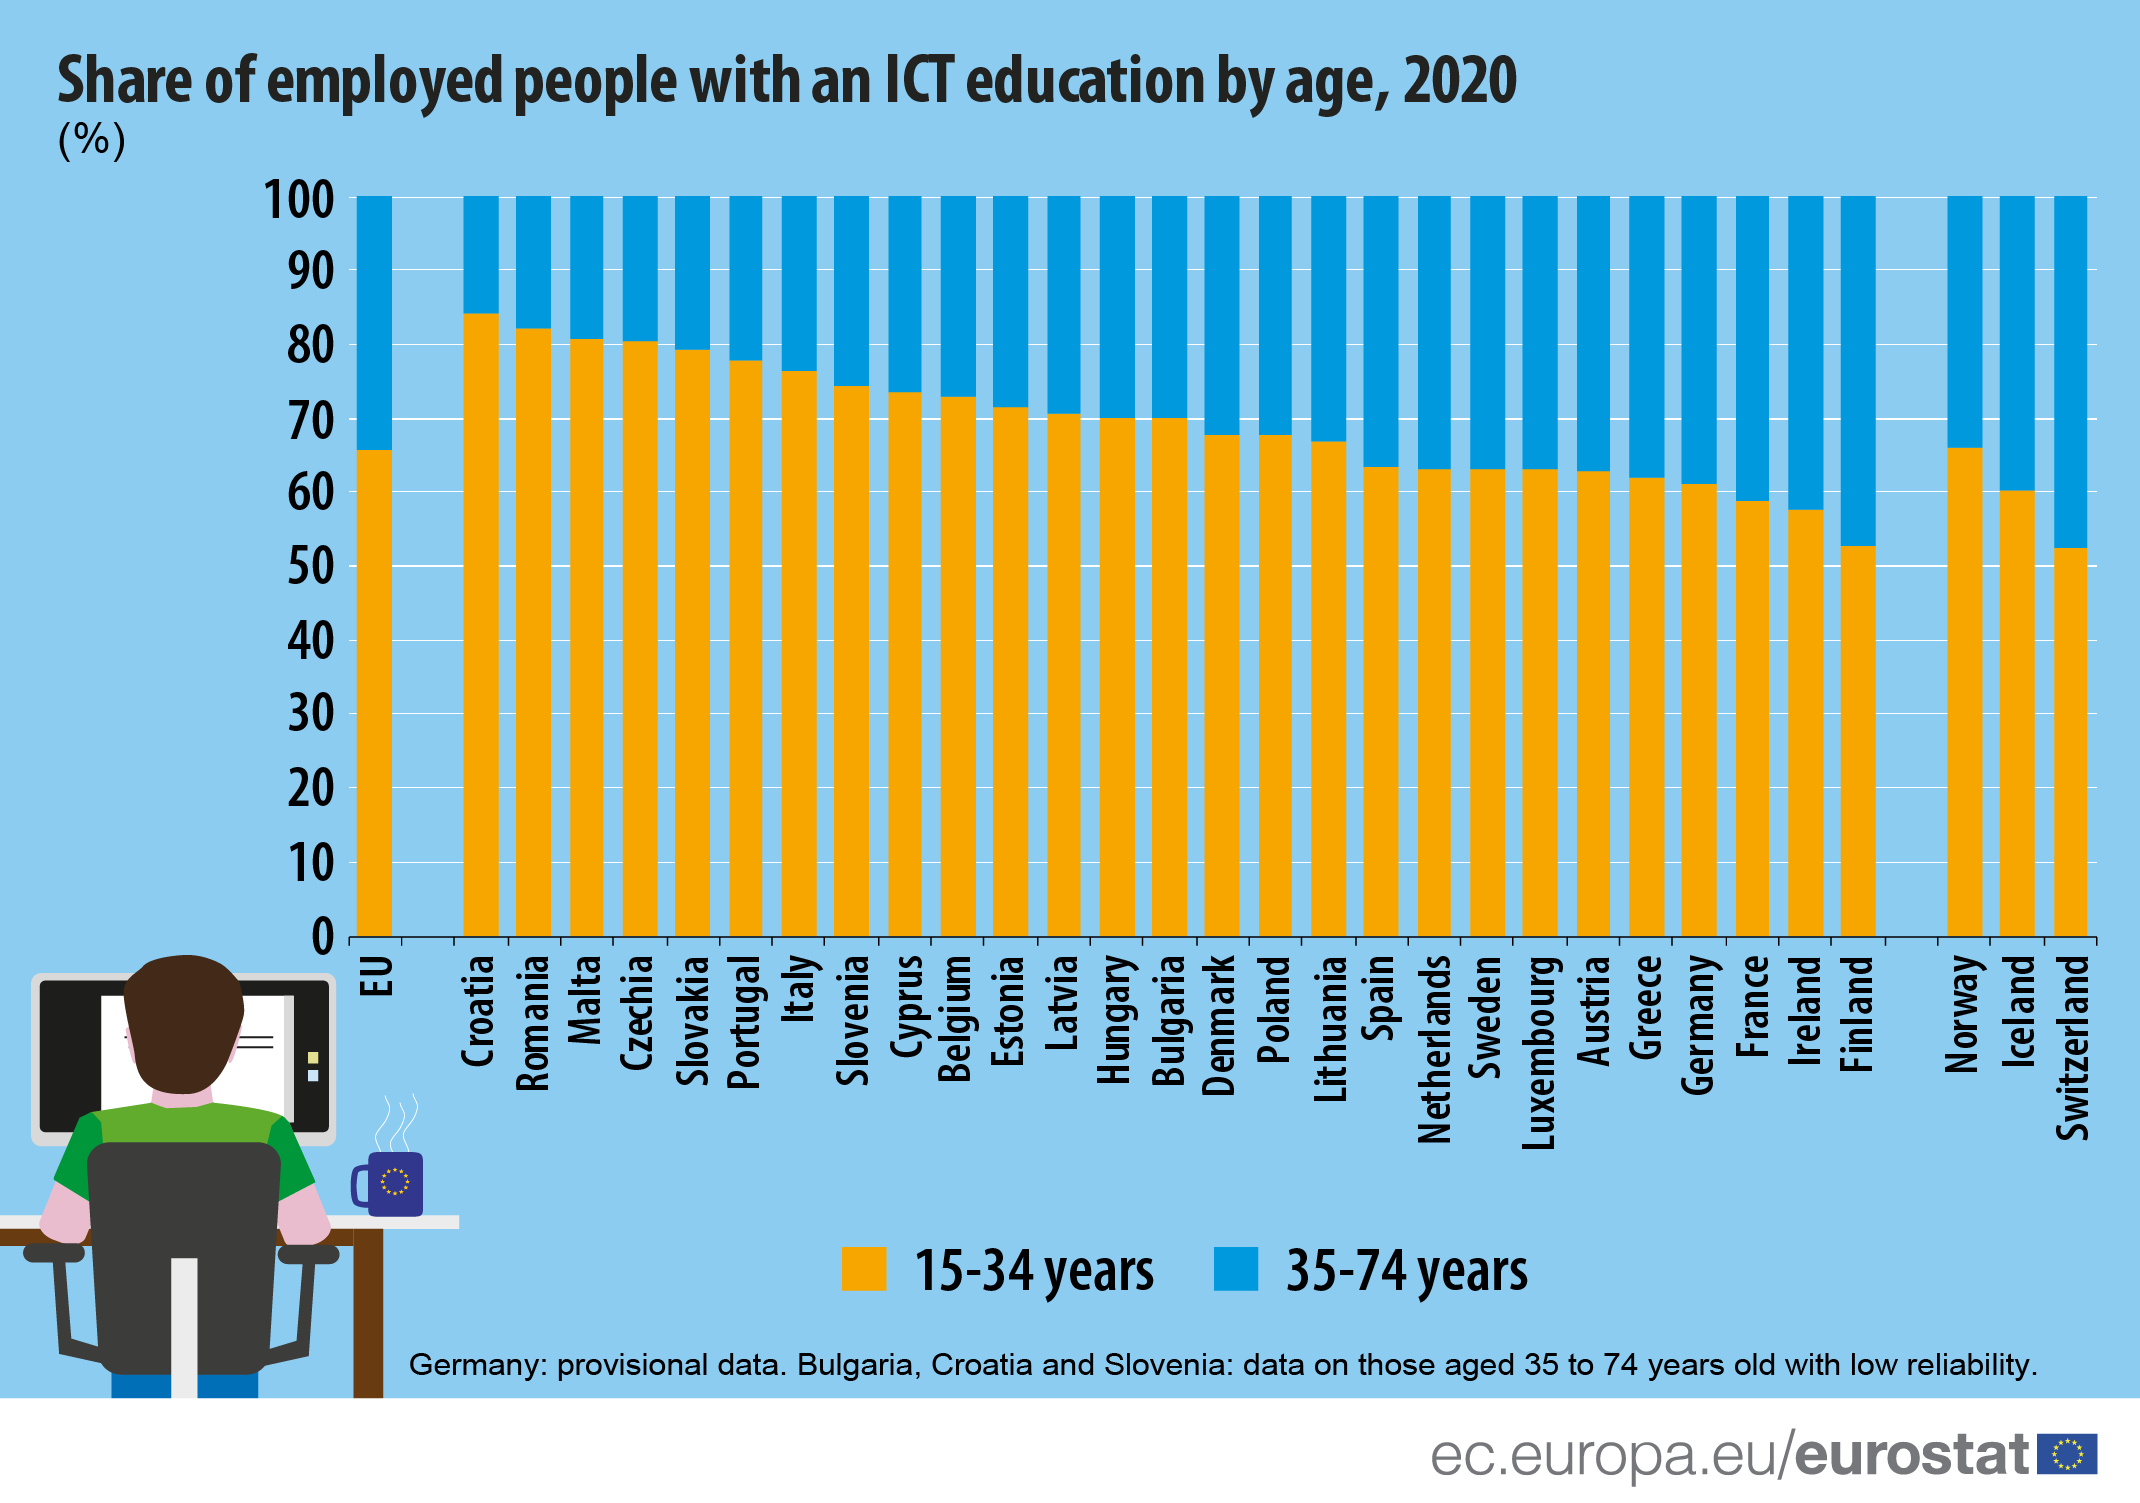 Infographic: Share of employed people with an ICT education by age, 2020